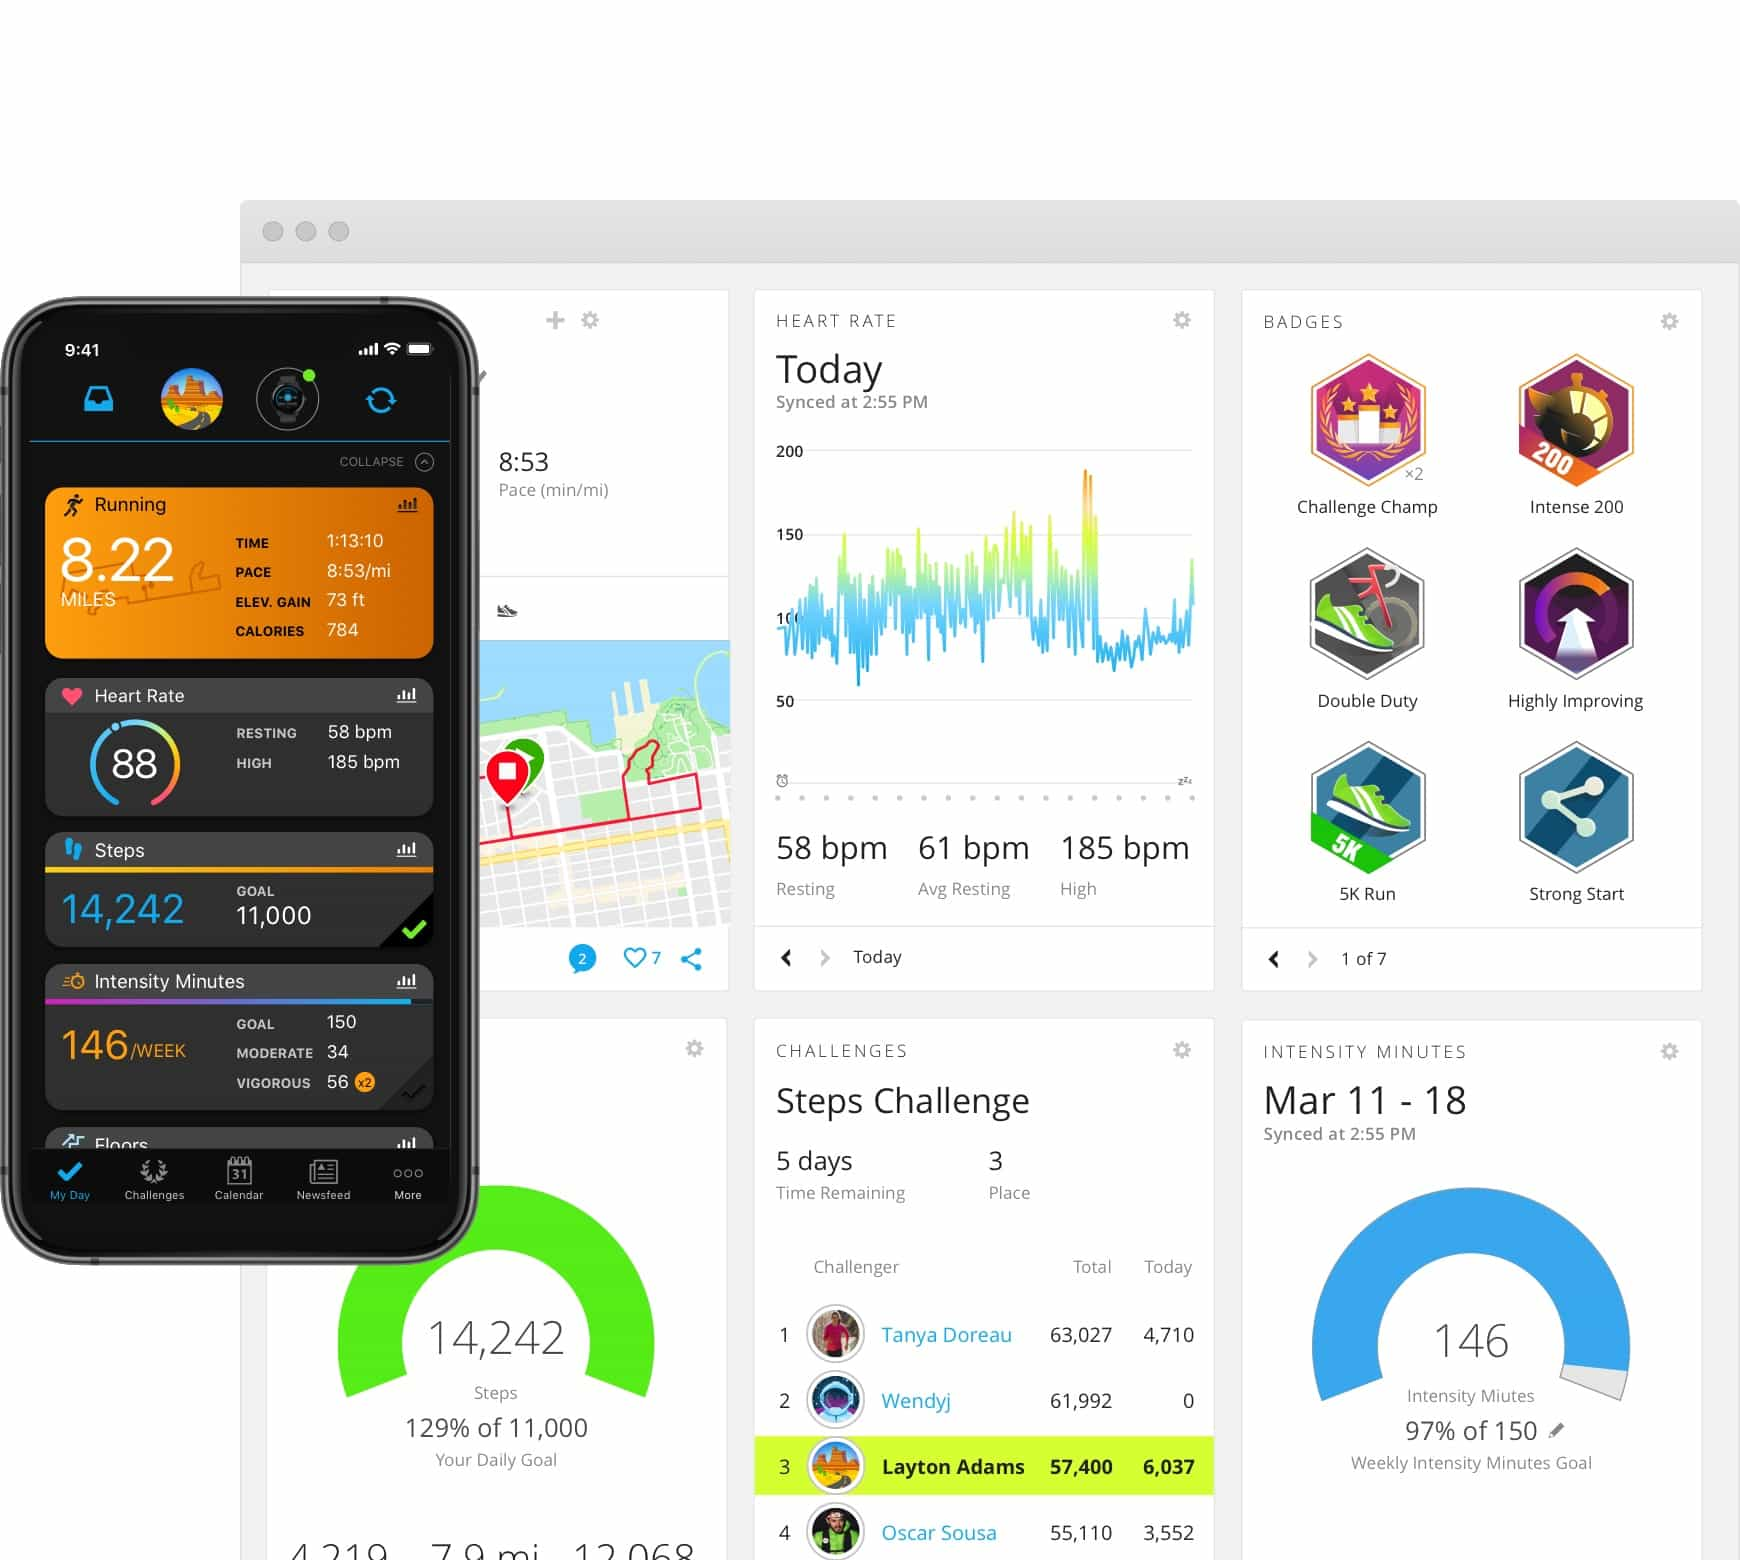 Mobili Baltija Garmin Connect Free Online Fitness Community